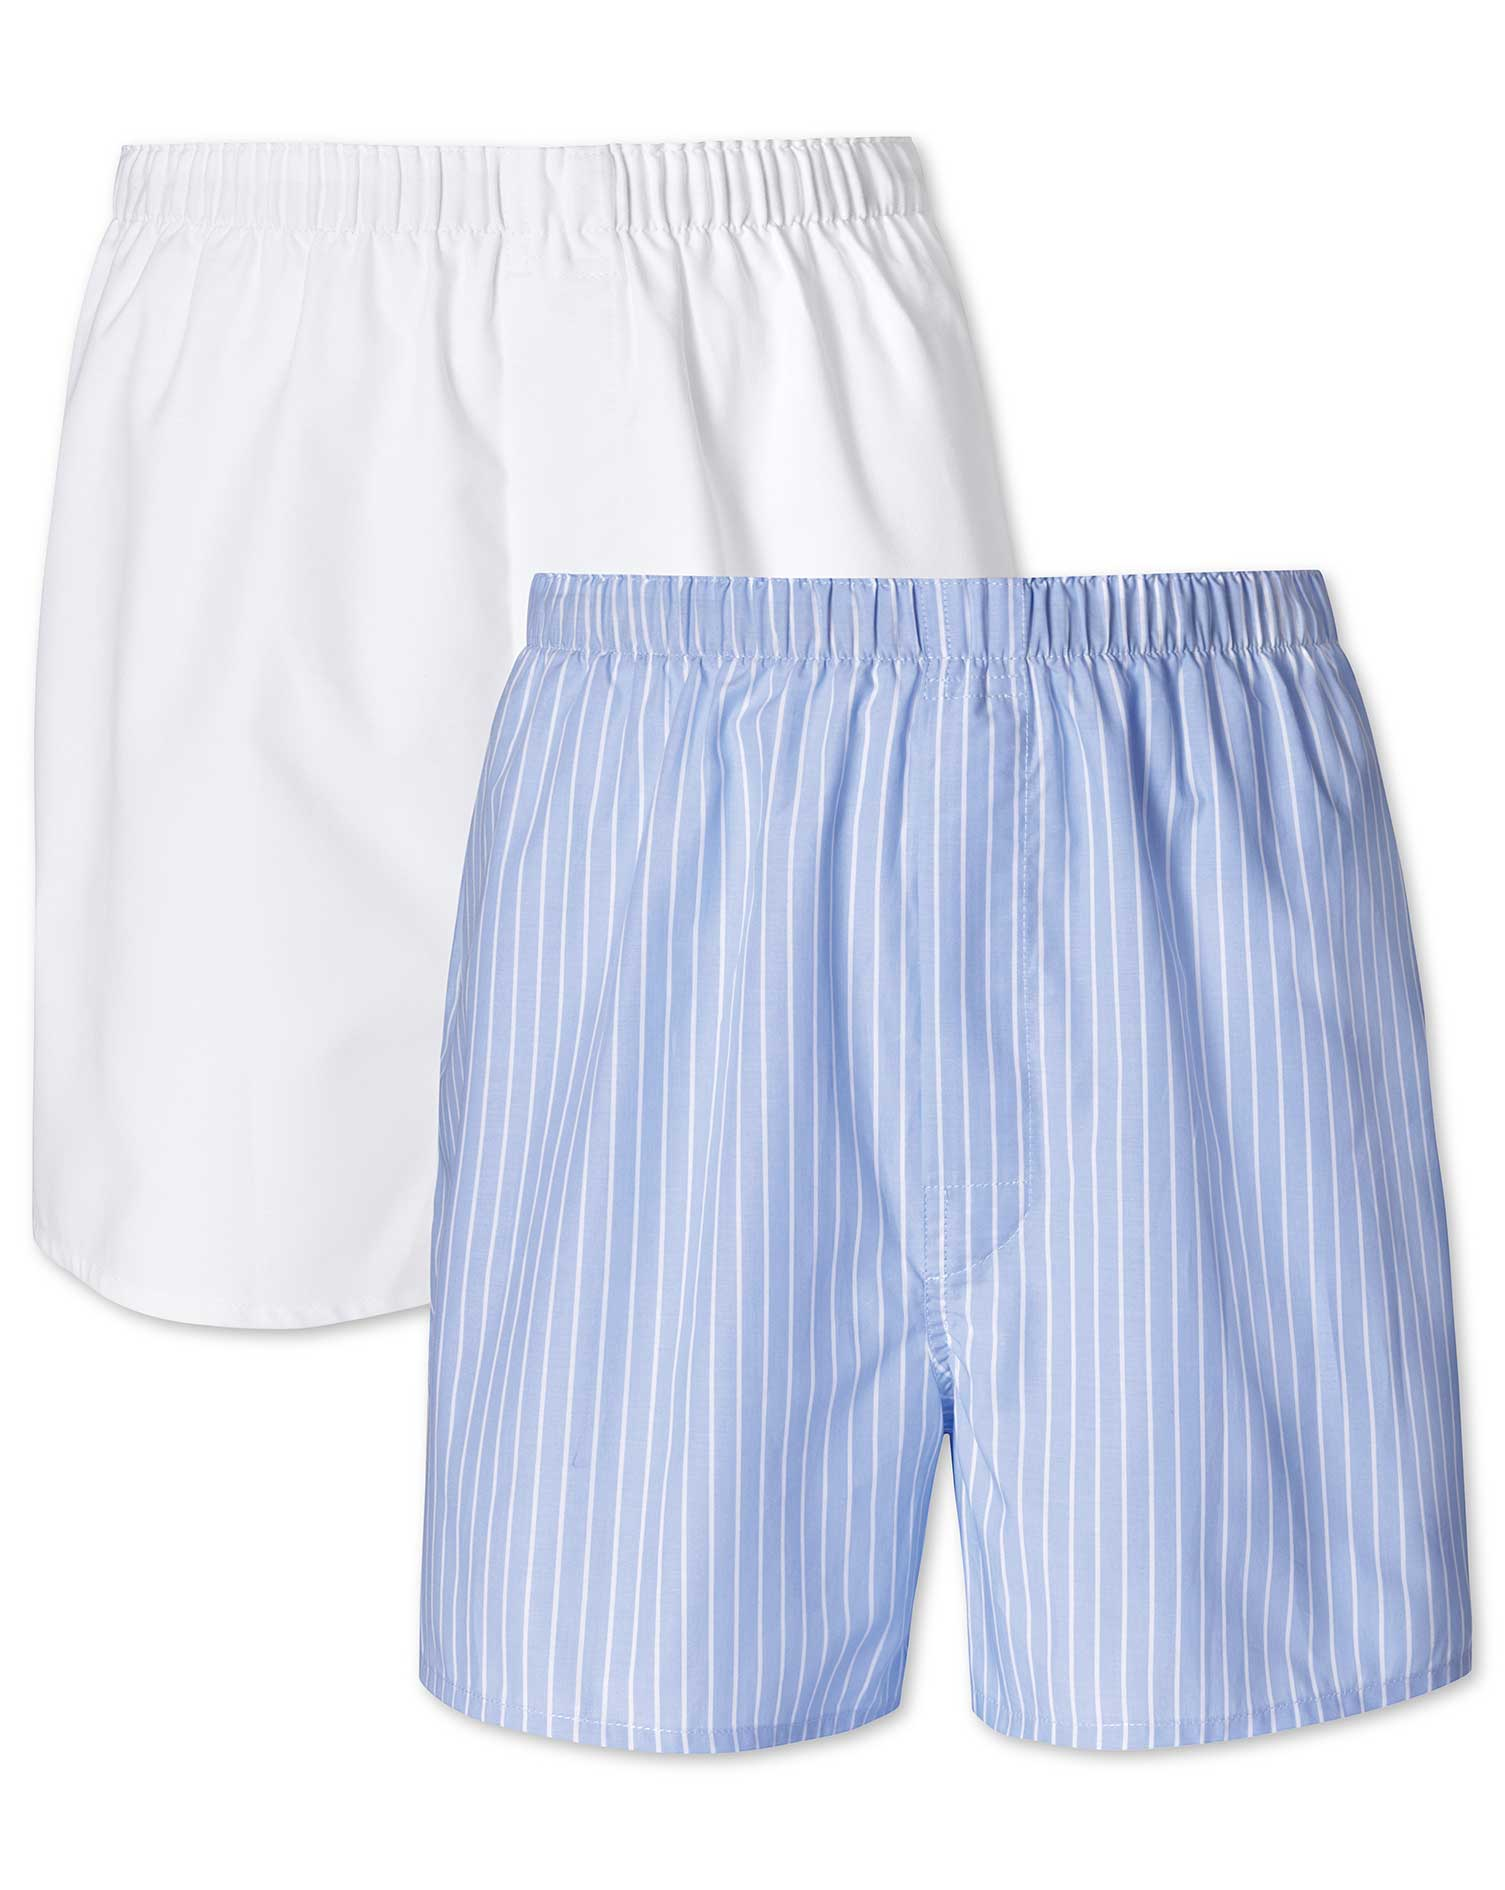 Sky Stripe and White 2 Pack Boxers Size Small by Charles Tyrwhitt